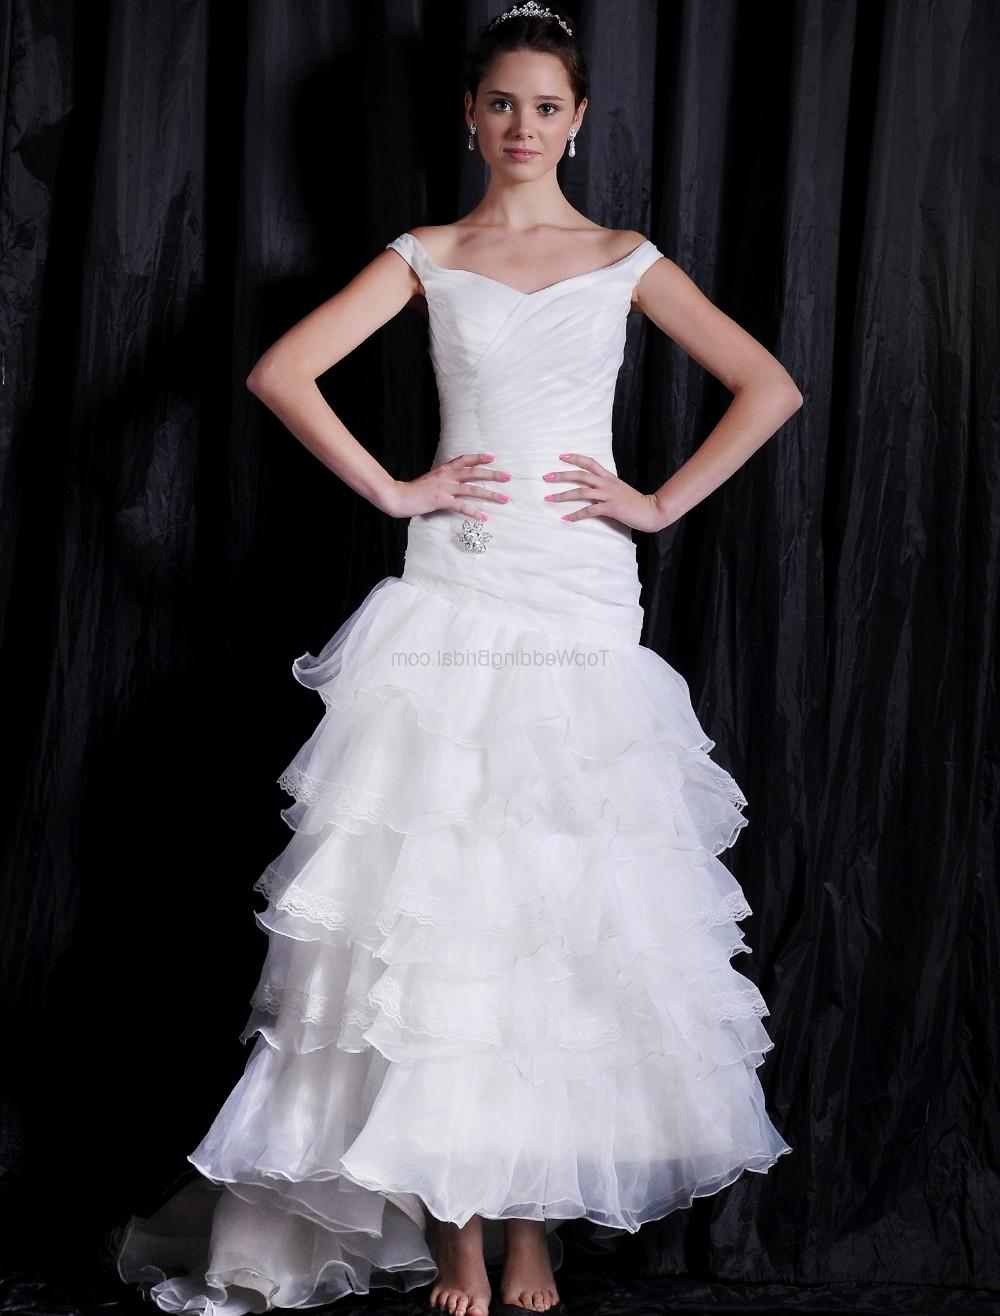 Satin Organza Bridal Dress